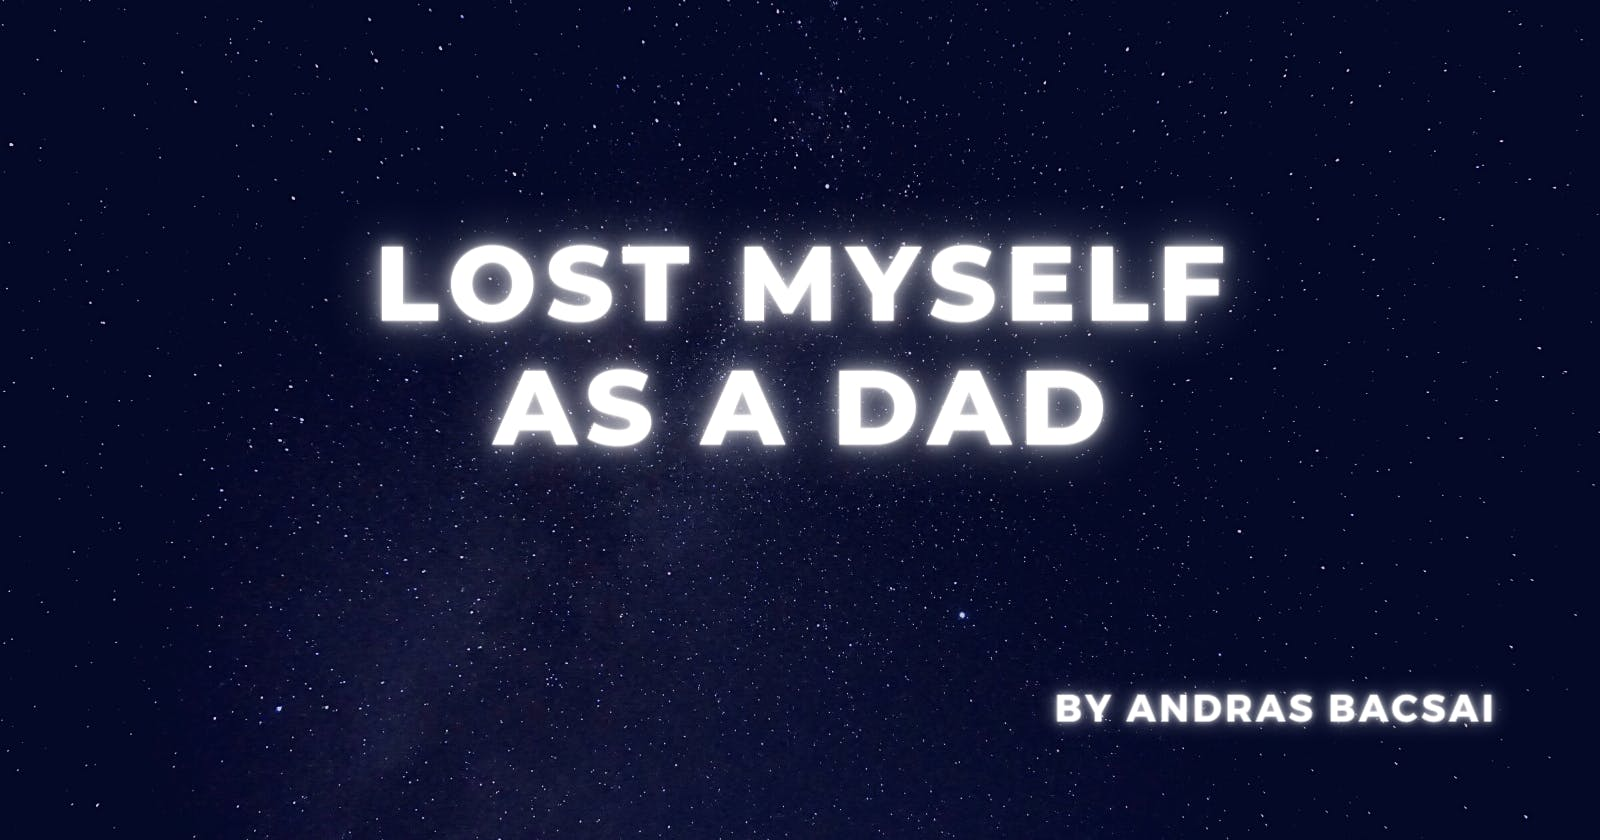 Lost myself as a dad